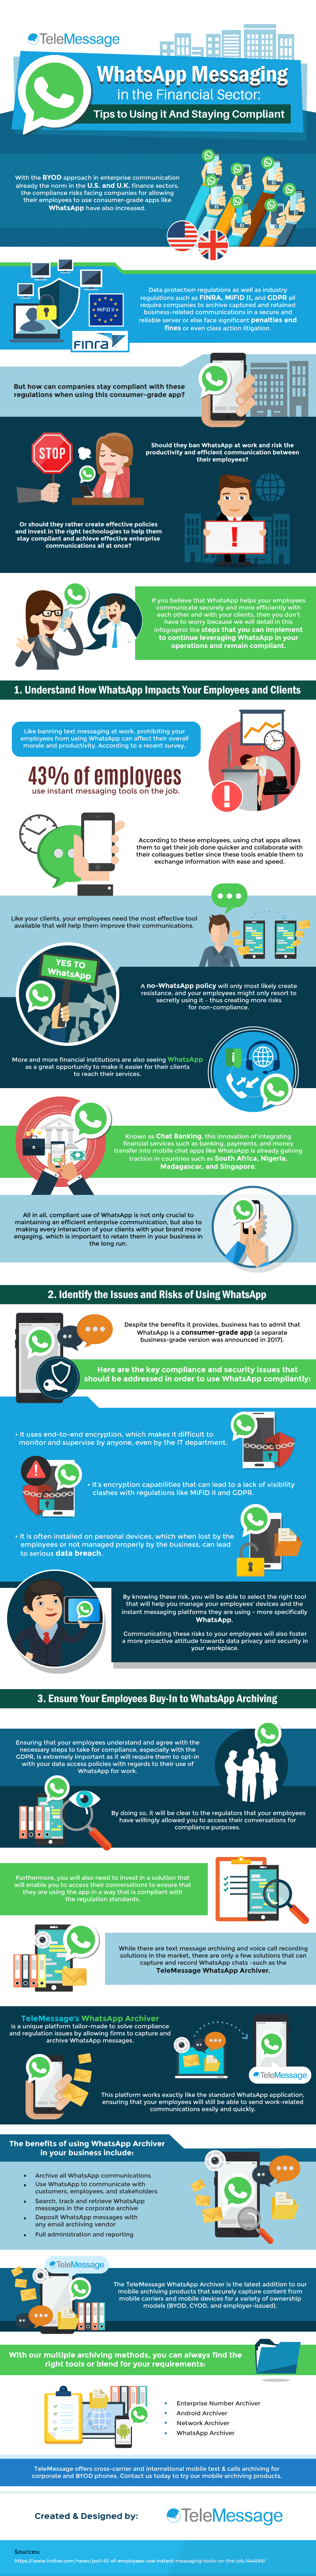 WhatsApp-Messaging-in-the-Financial-Sector